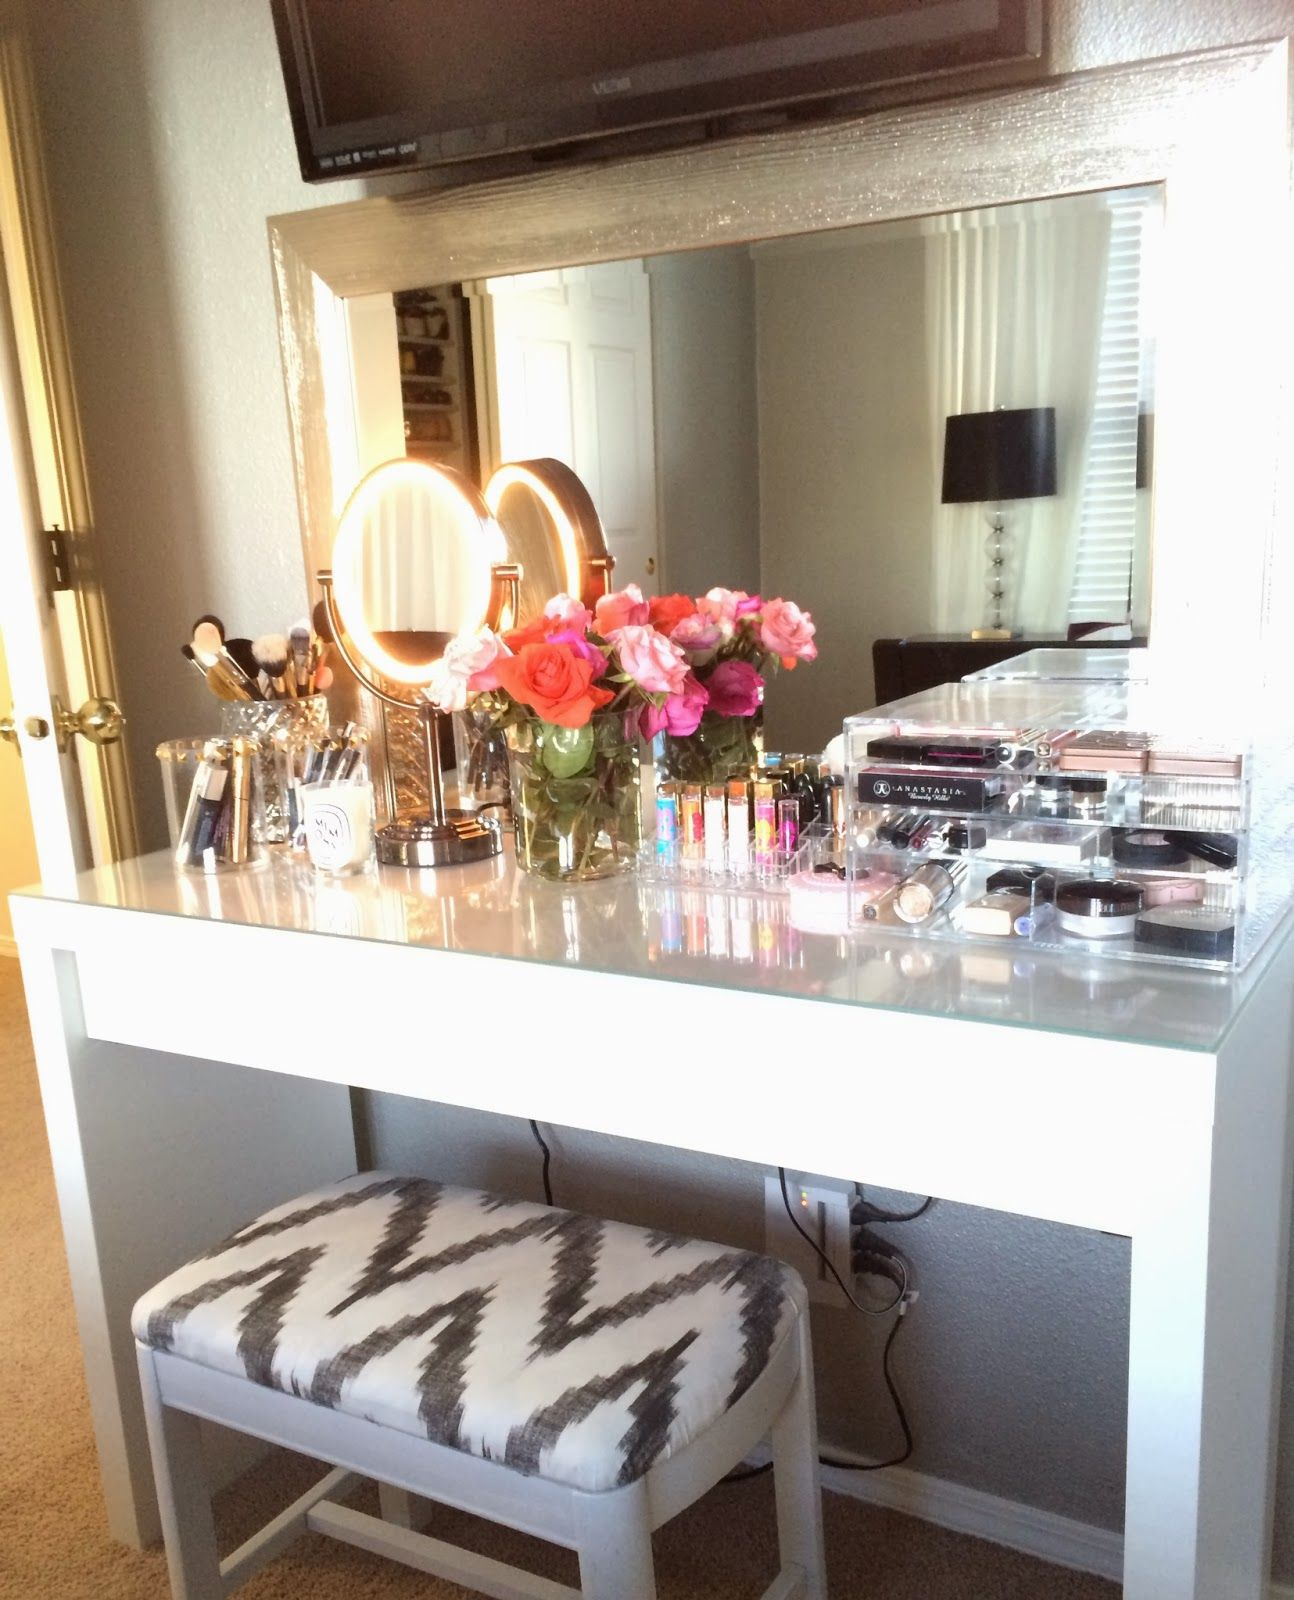 My Vanity Is Finally Done! And You Know What I Have Been Thinking? Why